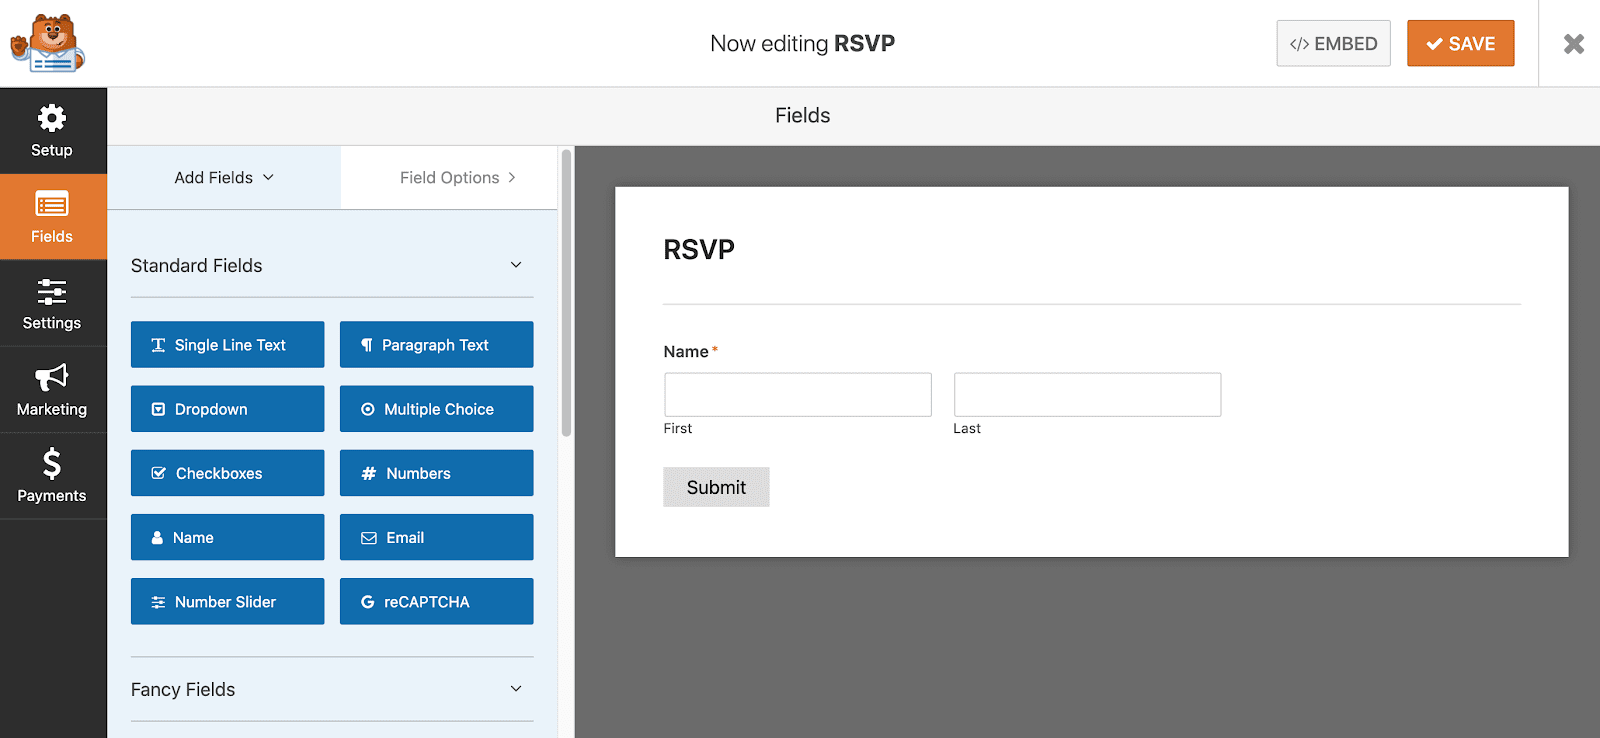 Create and RSVP form in WordPress using WPForms